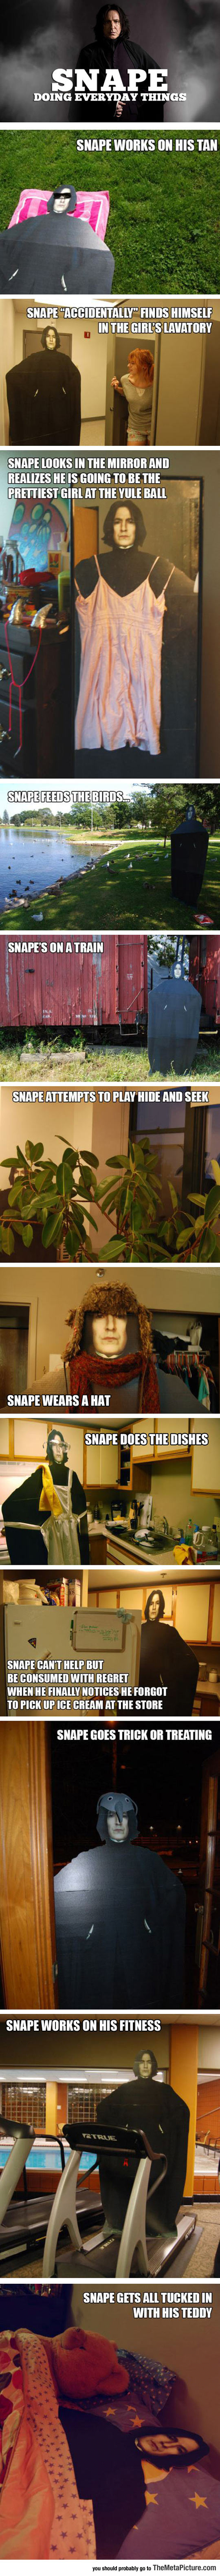 Just Snape Doing Everyday Things